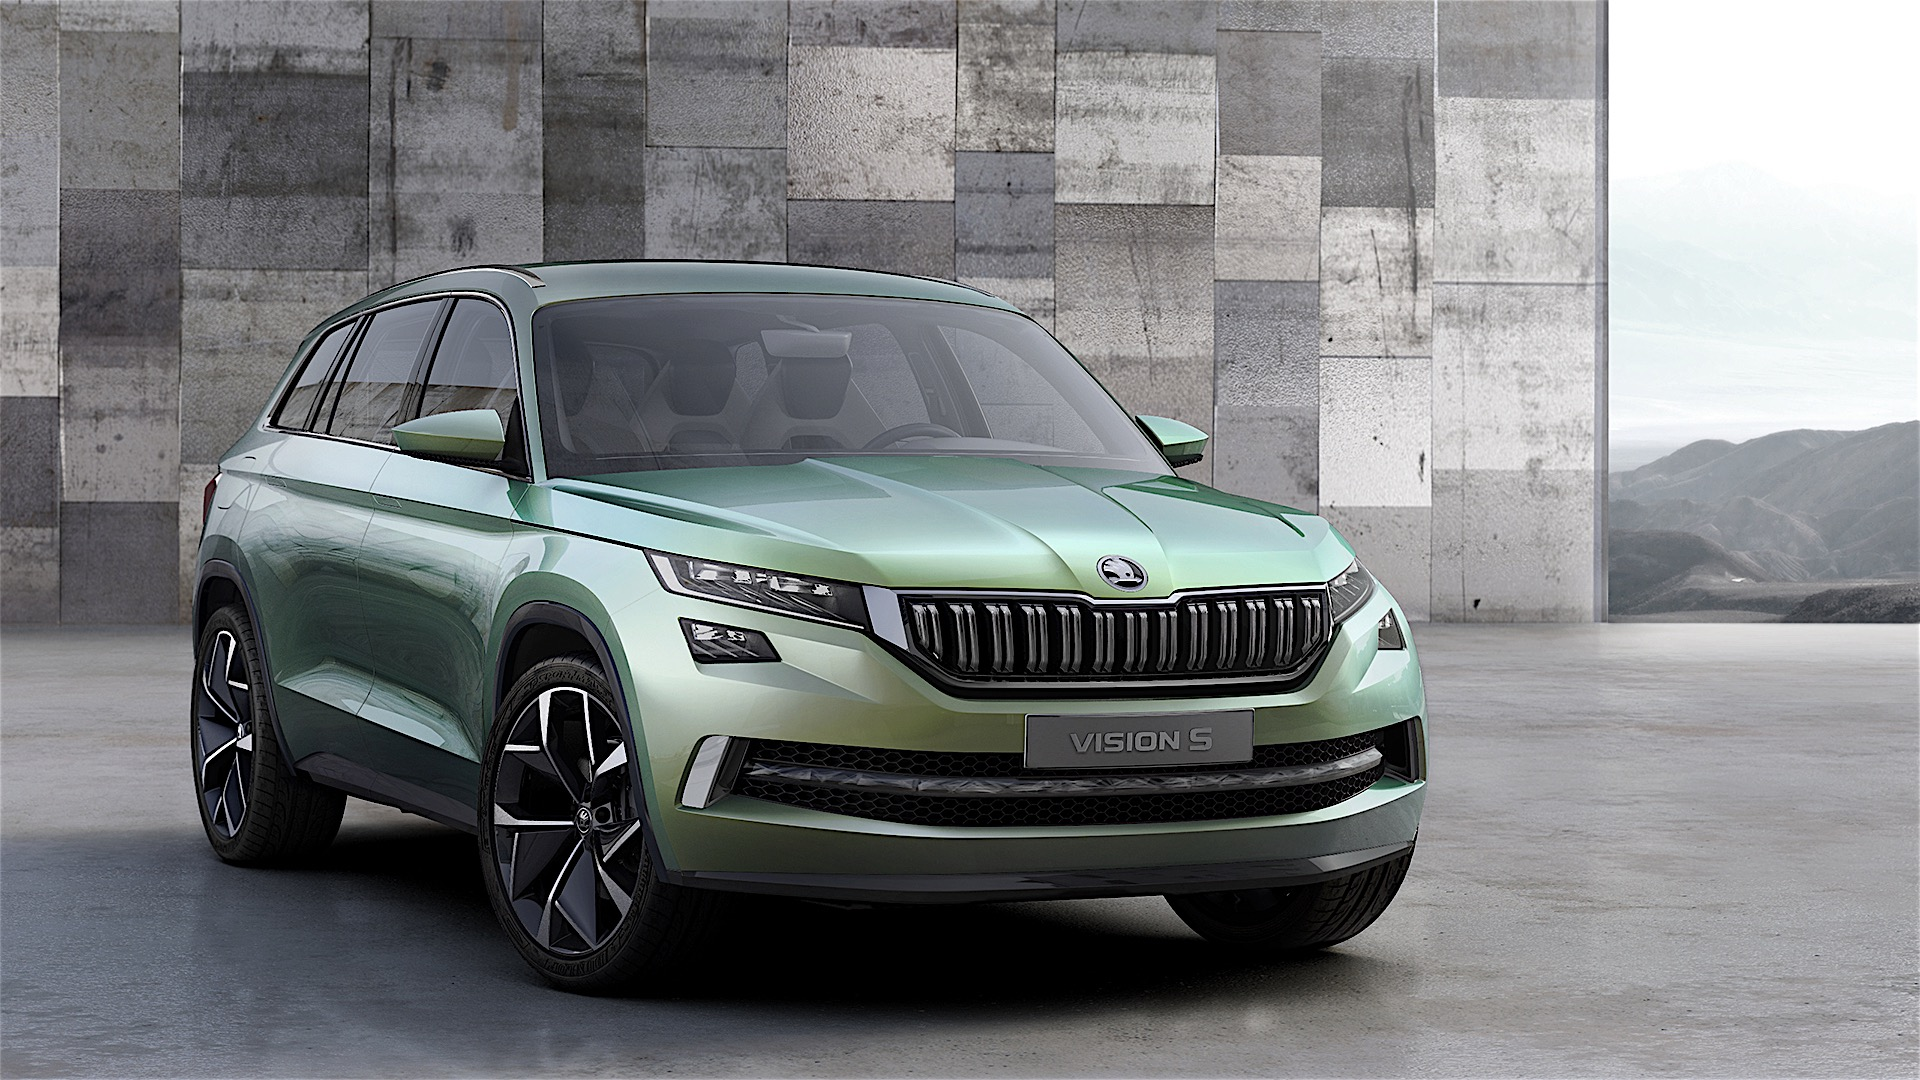 skoda showcases visions concept study it 39 s a plug in. Black Bedroom Furniture Sets. Home Design Ideas